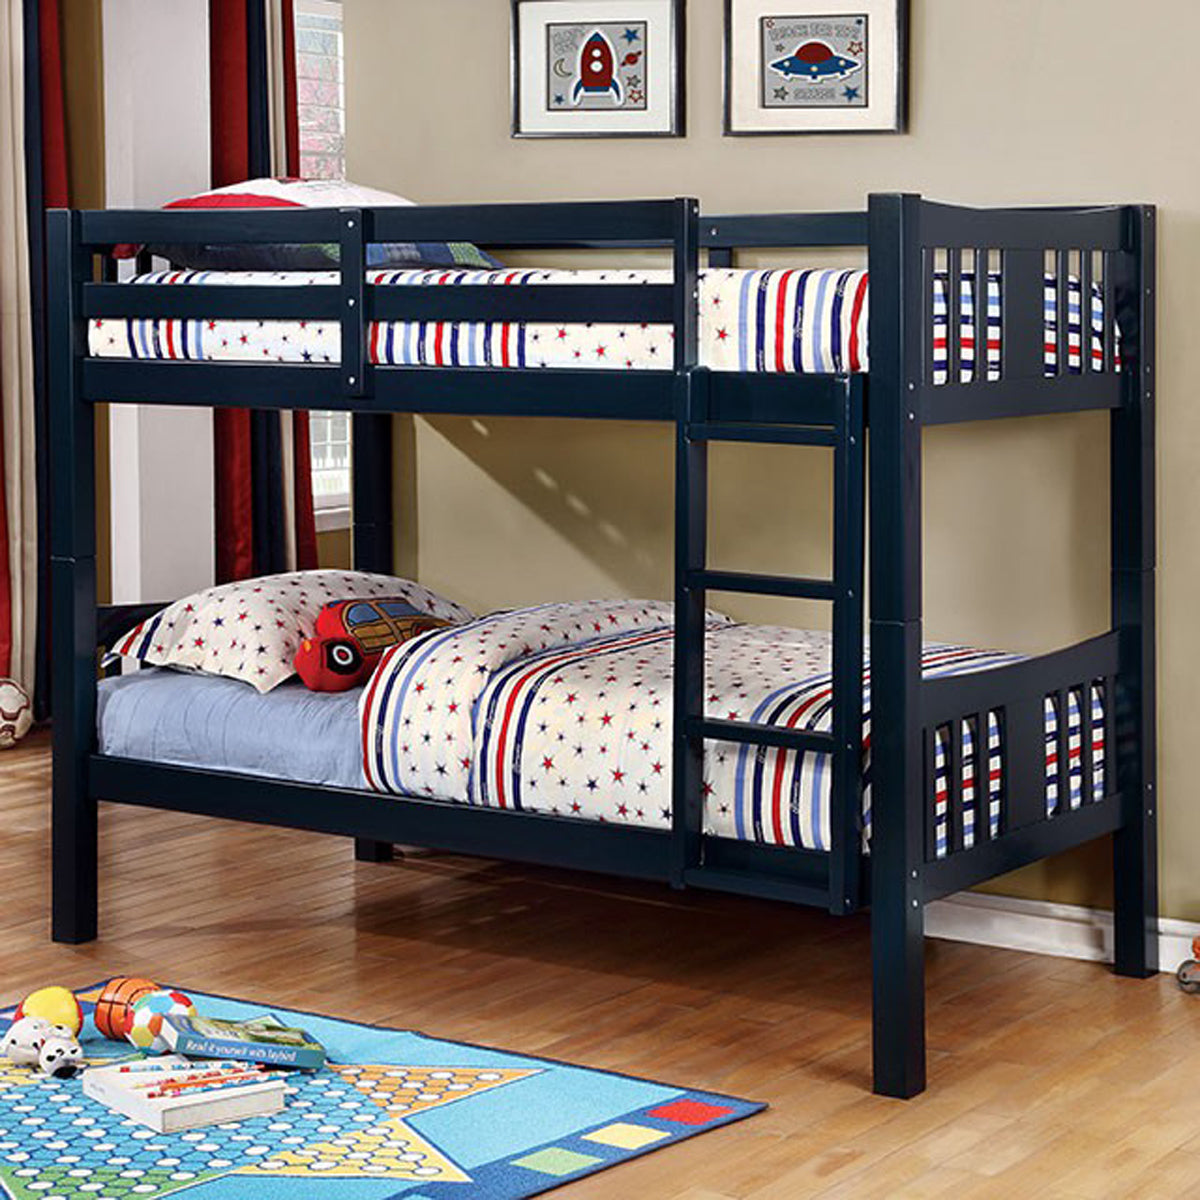 Cameron CM-BK929BL Transitional Blue Twin over Twin Bunk Bed